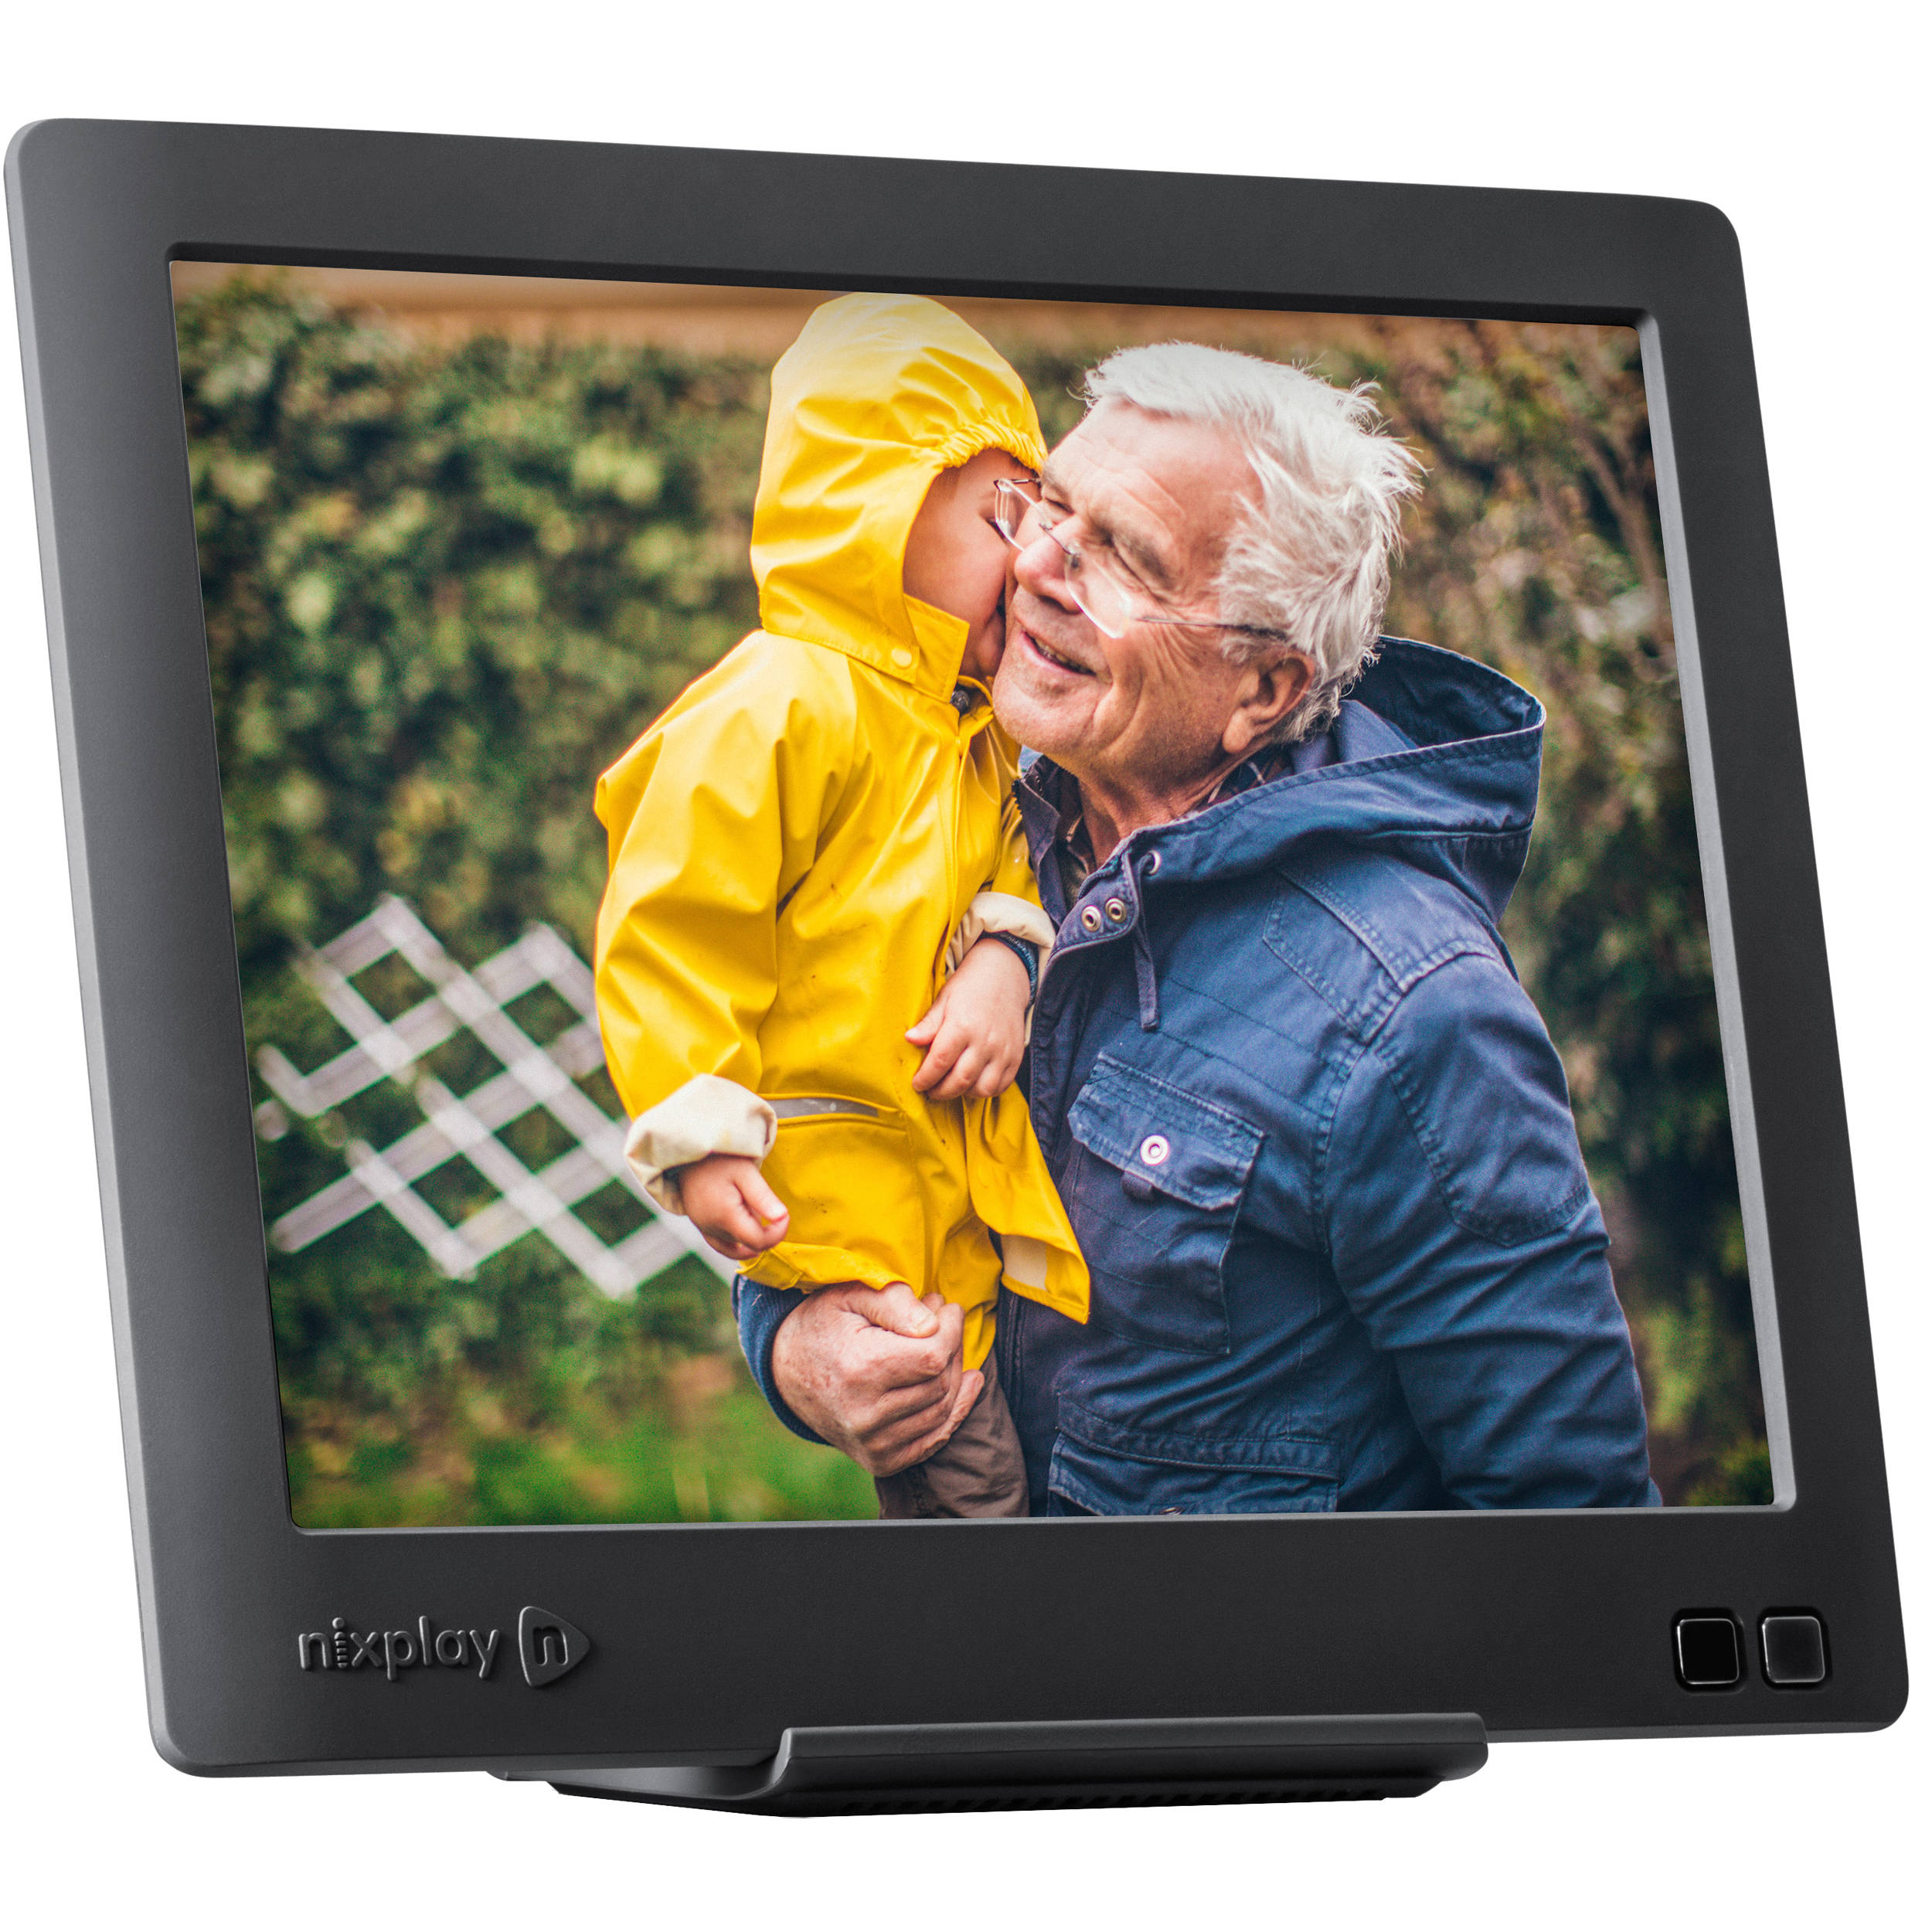 nixplay nixplay Edge Cloud WiFi Digital Picture Frame W08C B&H